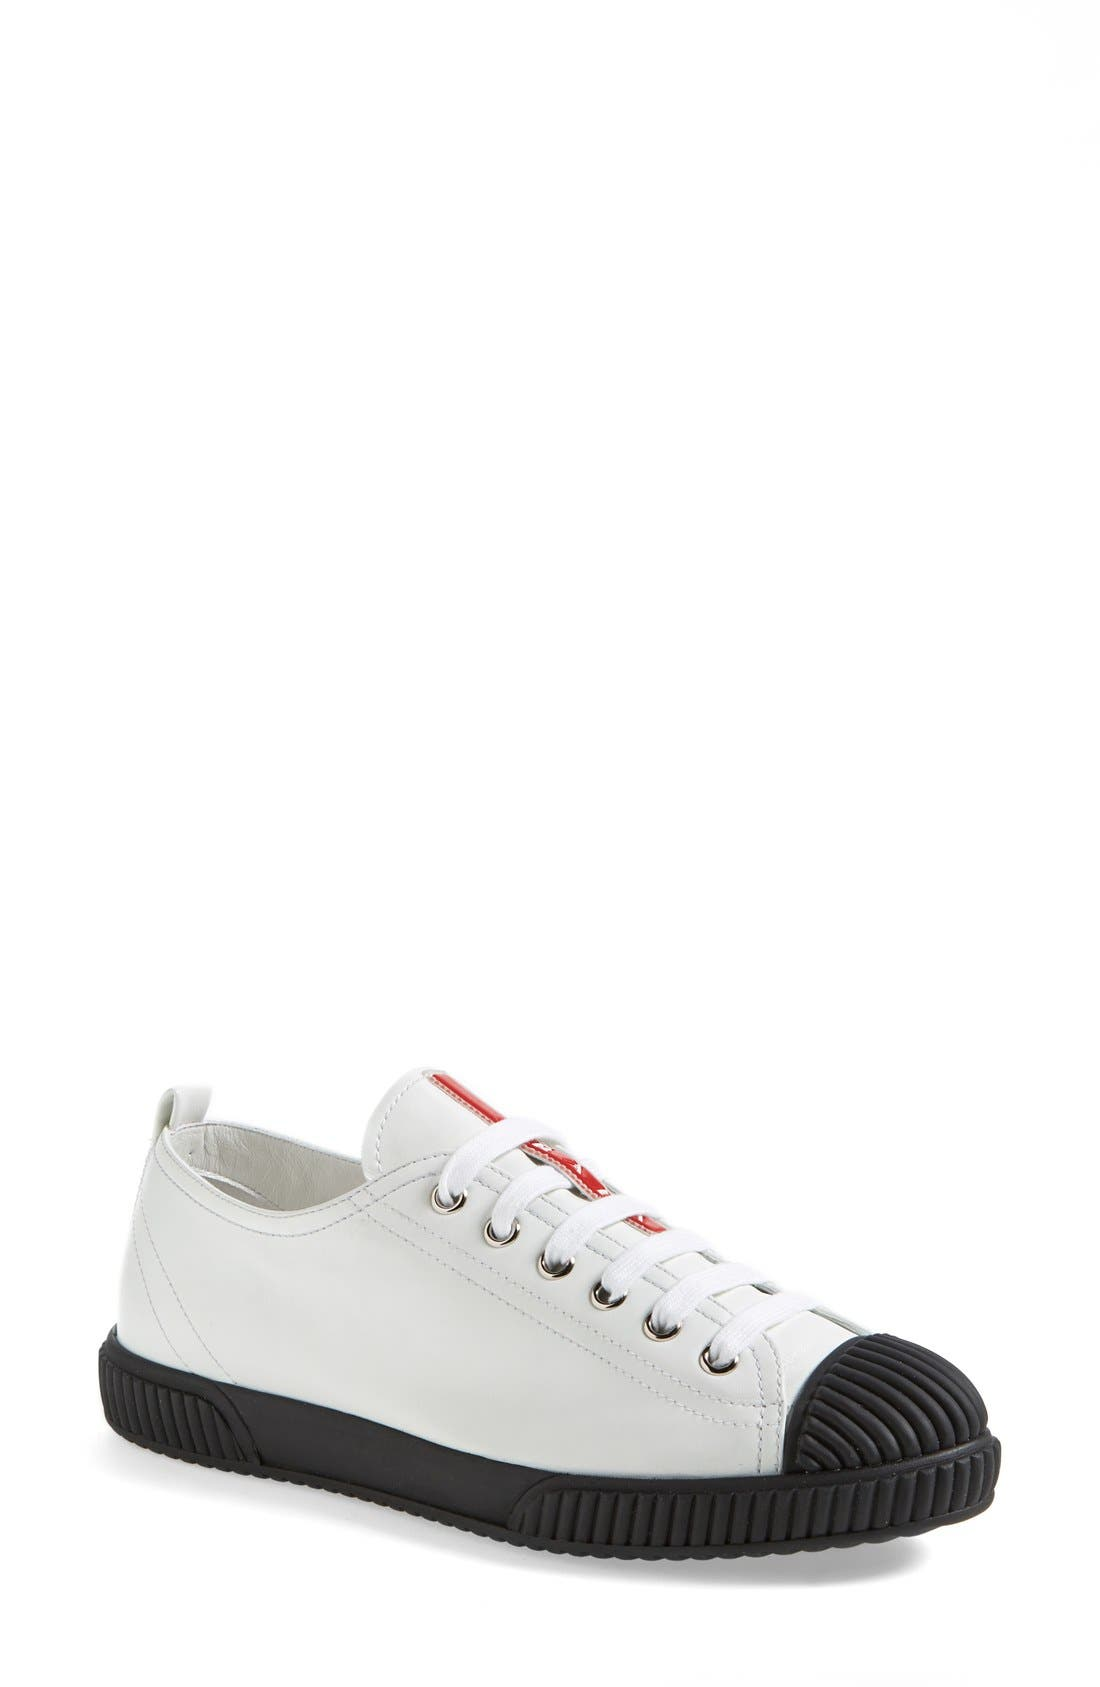 Alternate Image 1 Selected - Prada Cap Toe Sneaker (Women)